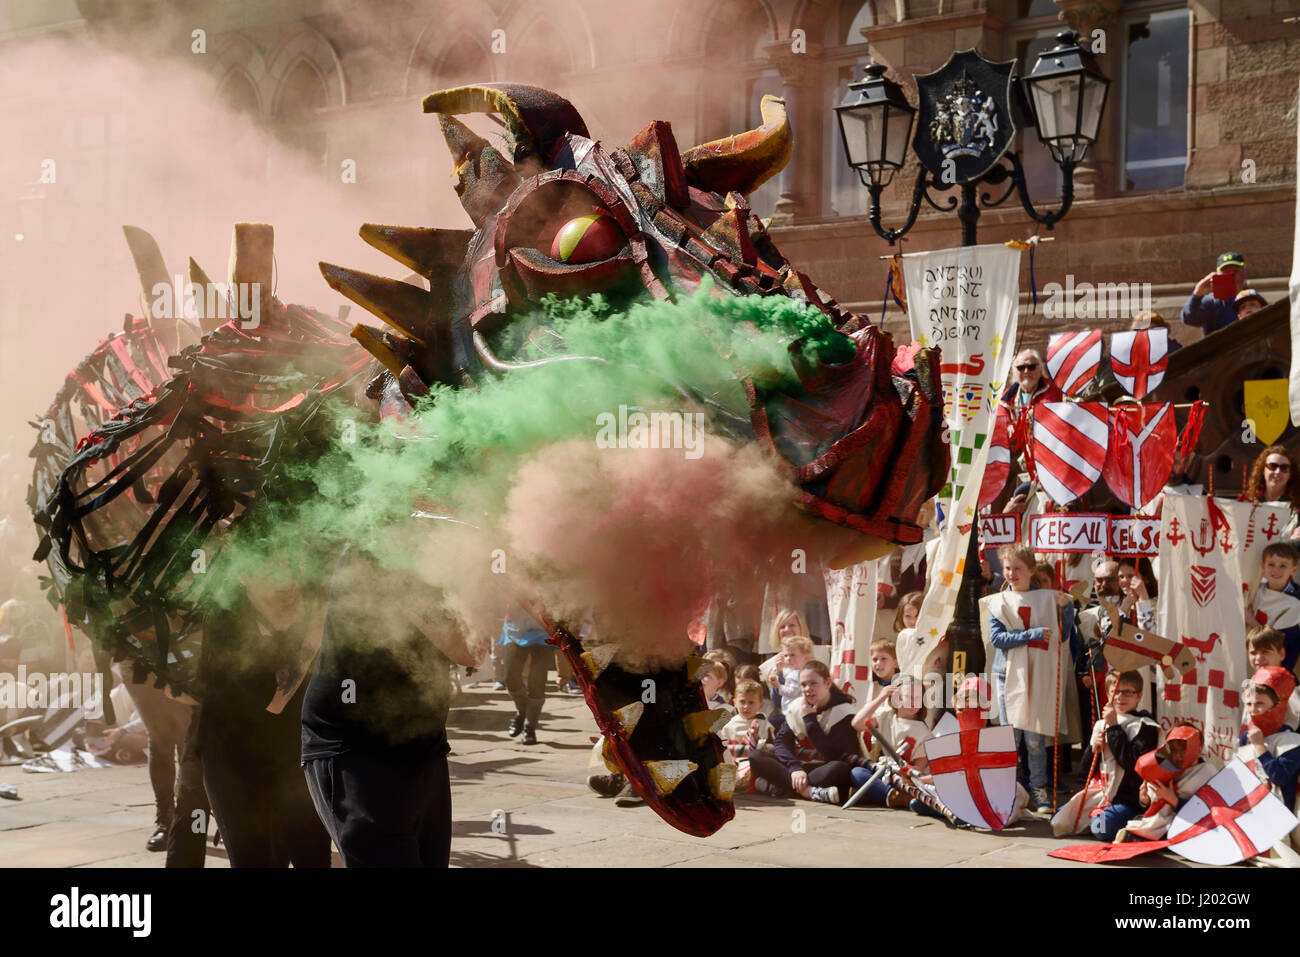 Chester, UK. 23rd April 2017. A smoke breathing dragon makes an entrance as part of the St George's day medieval Stock Foto